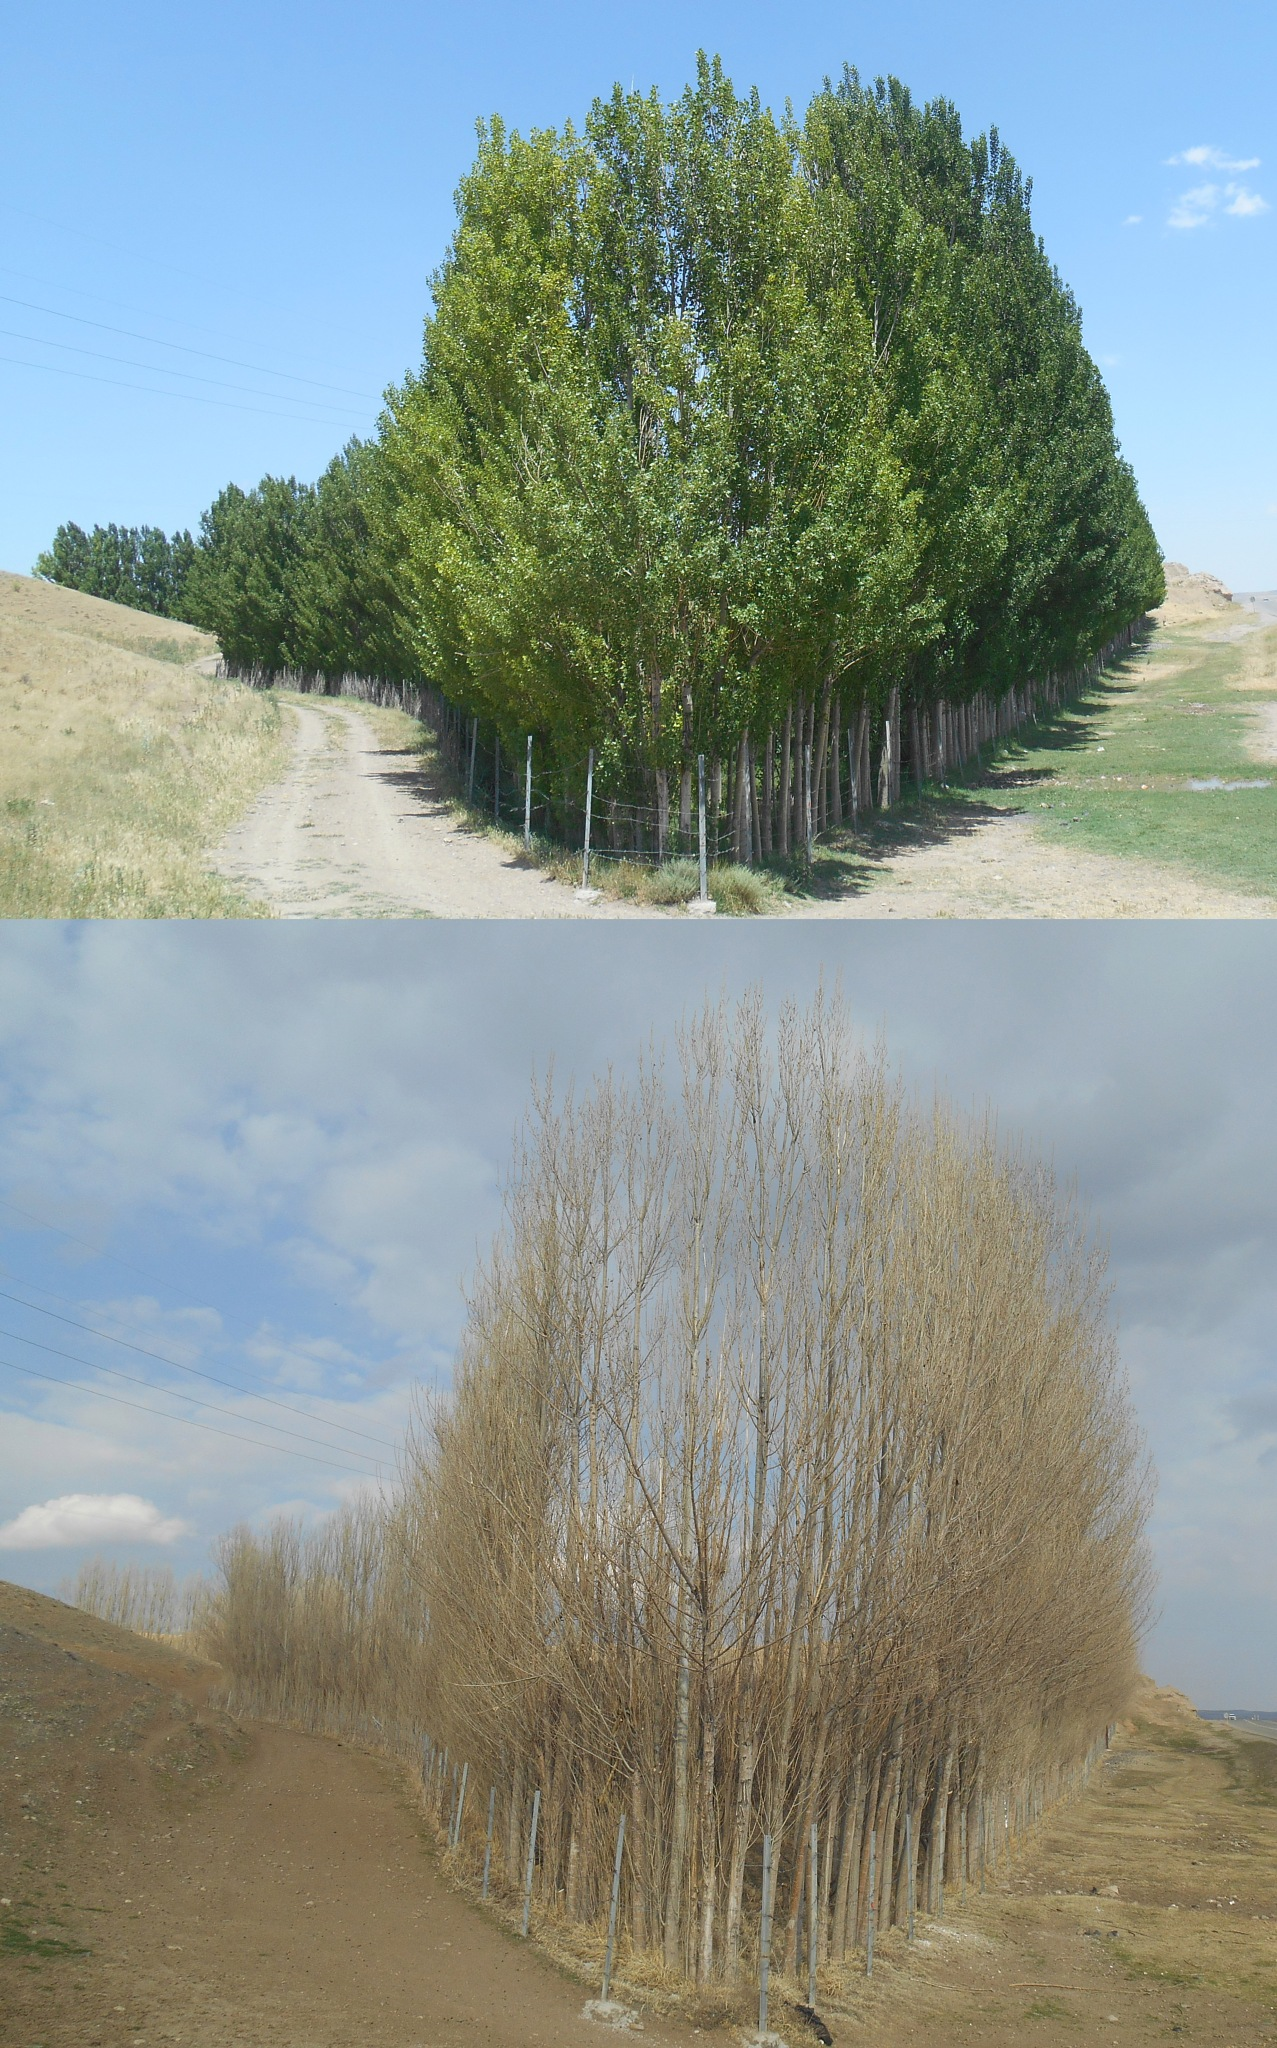 two different seasons by miladfhd1991